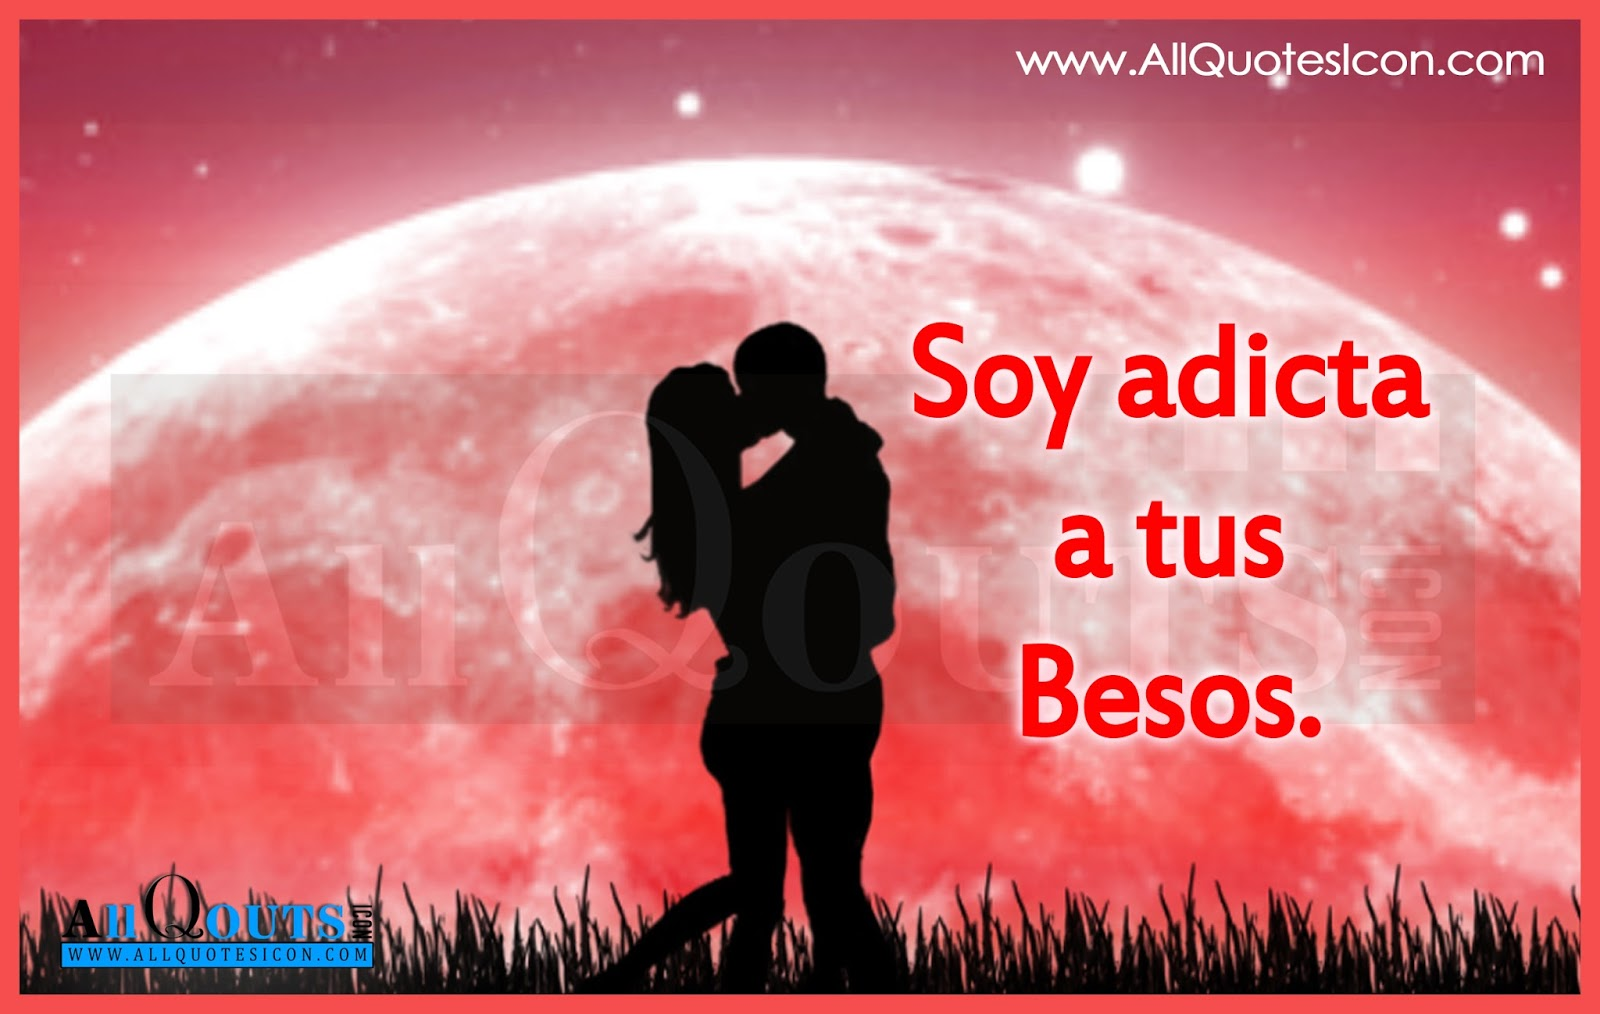 Islamic Quotes In Tamil Wallpapers Romantic Love Feelings In Spanish Www Allquotesicon Com